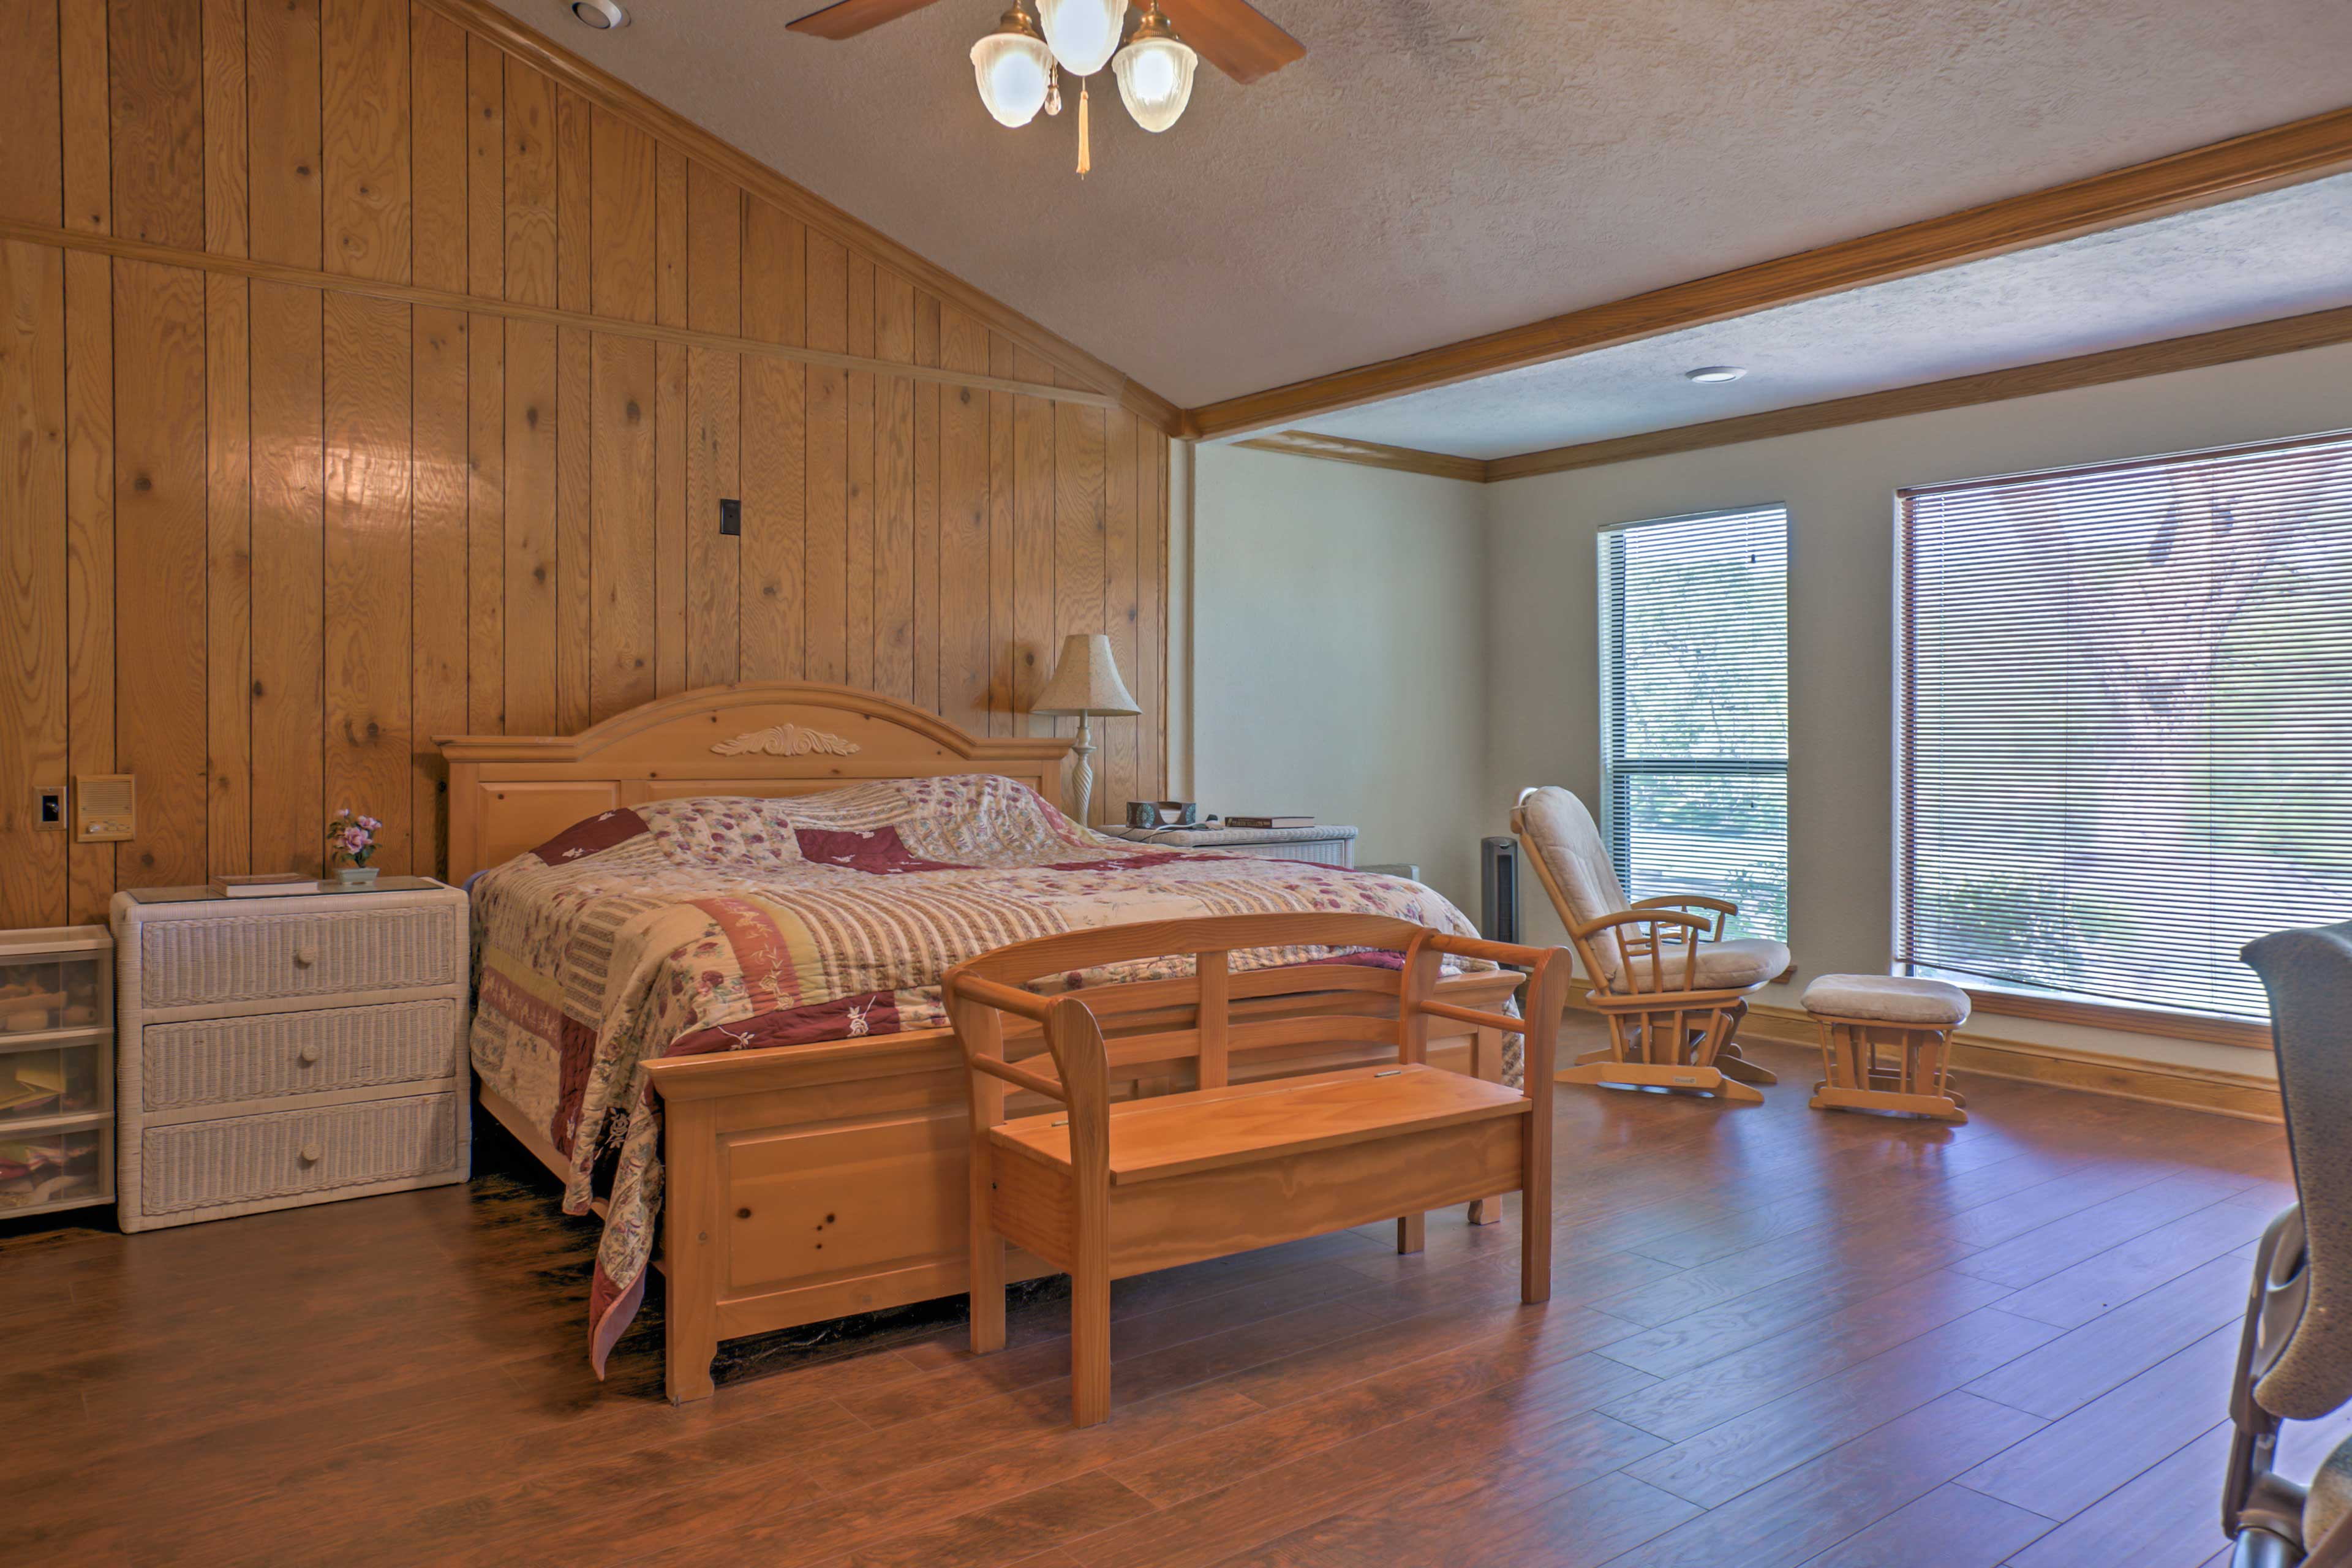 This master bedroom features a king-sized bed stunning lake views!